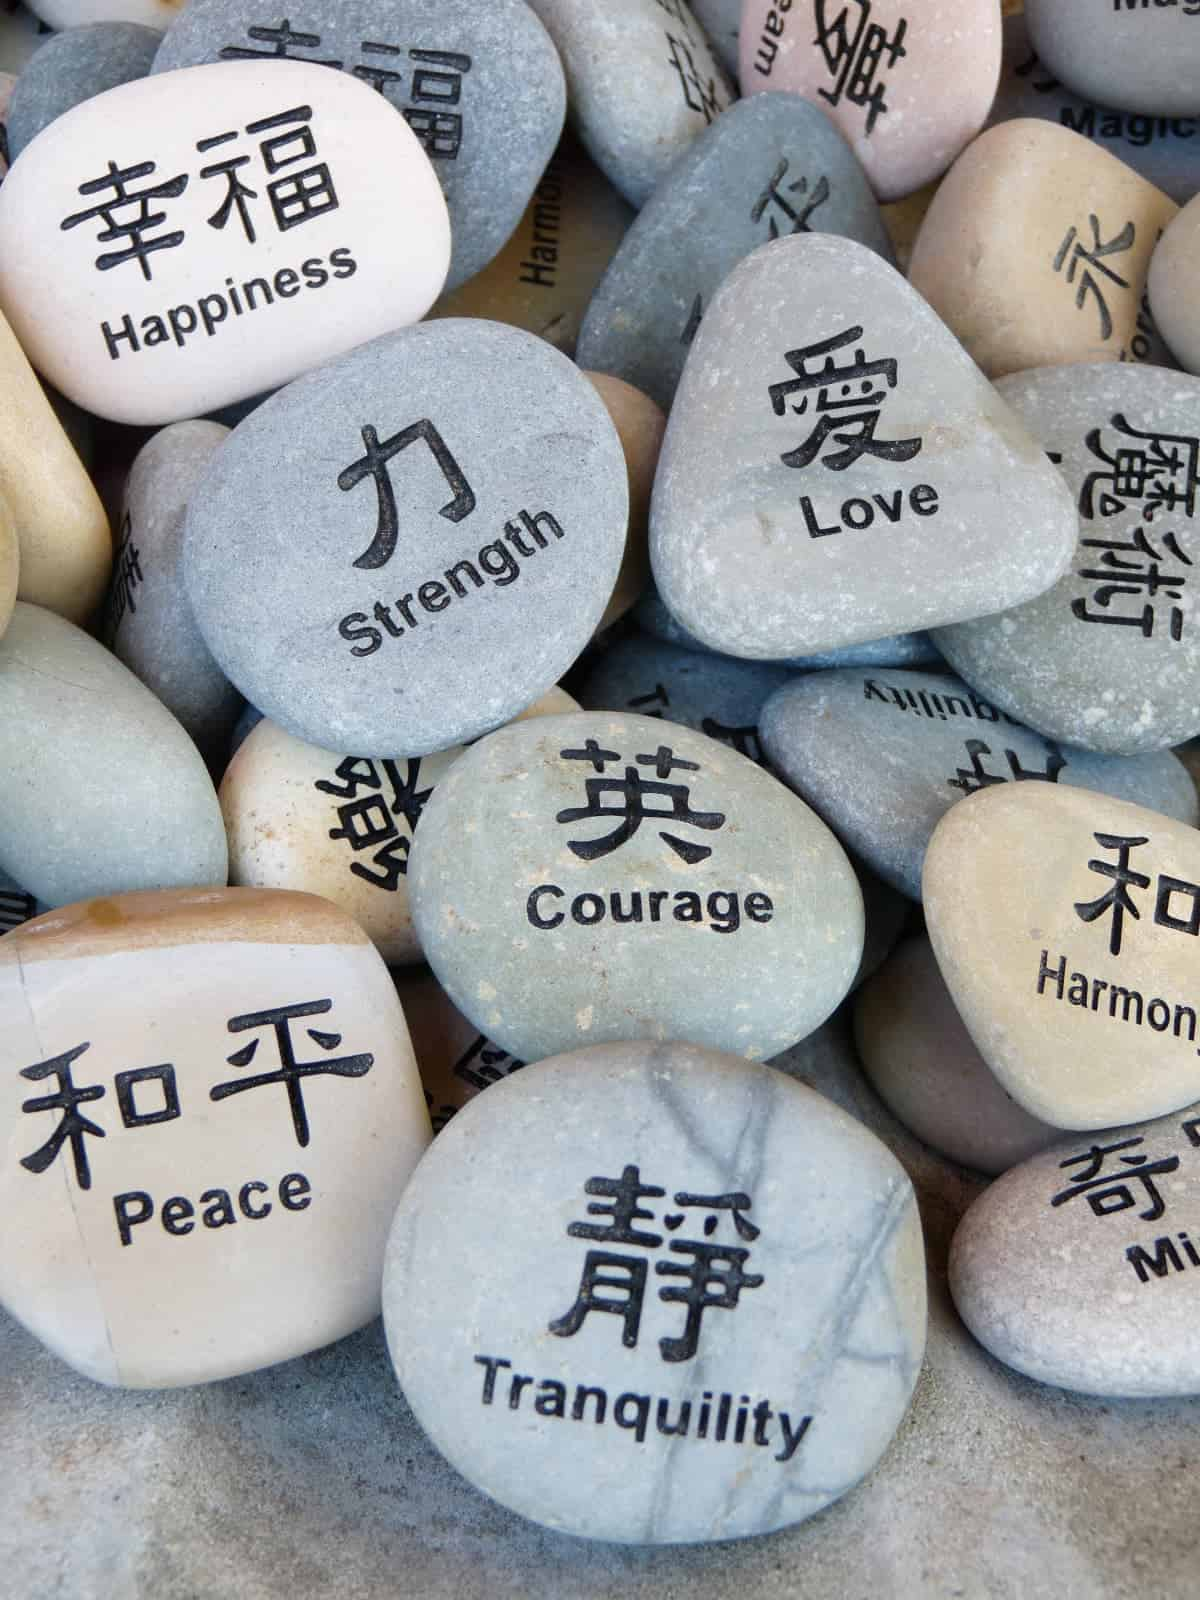 Inspirational words and Asian characters written on pile of colorful rocks.